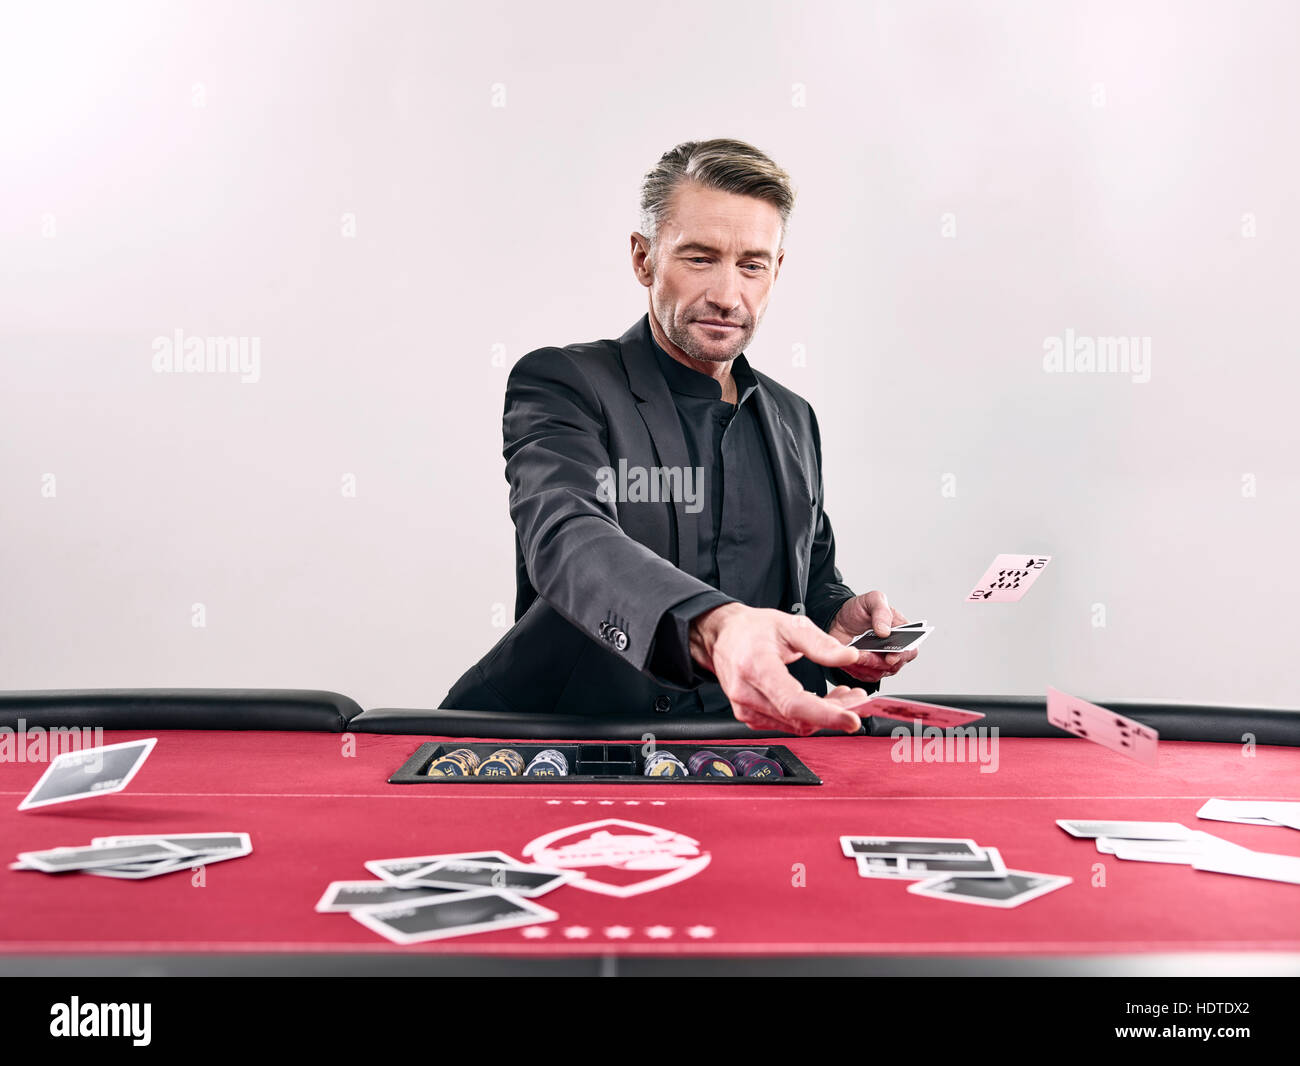 Man distributing playing cards, blackjack, casino, chips - Stock Image